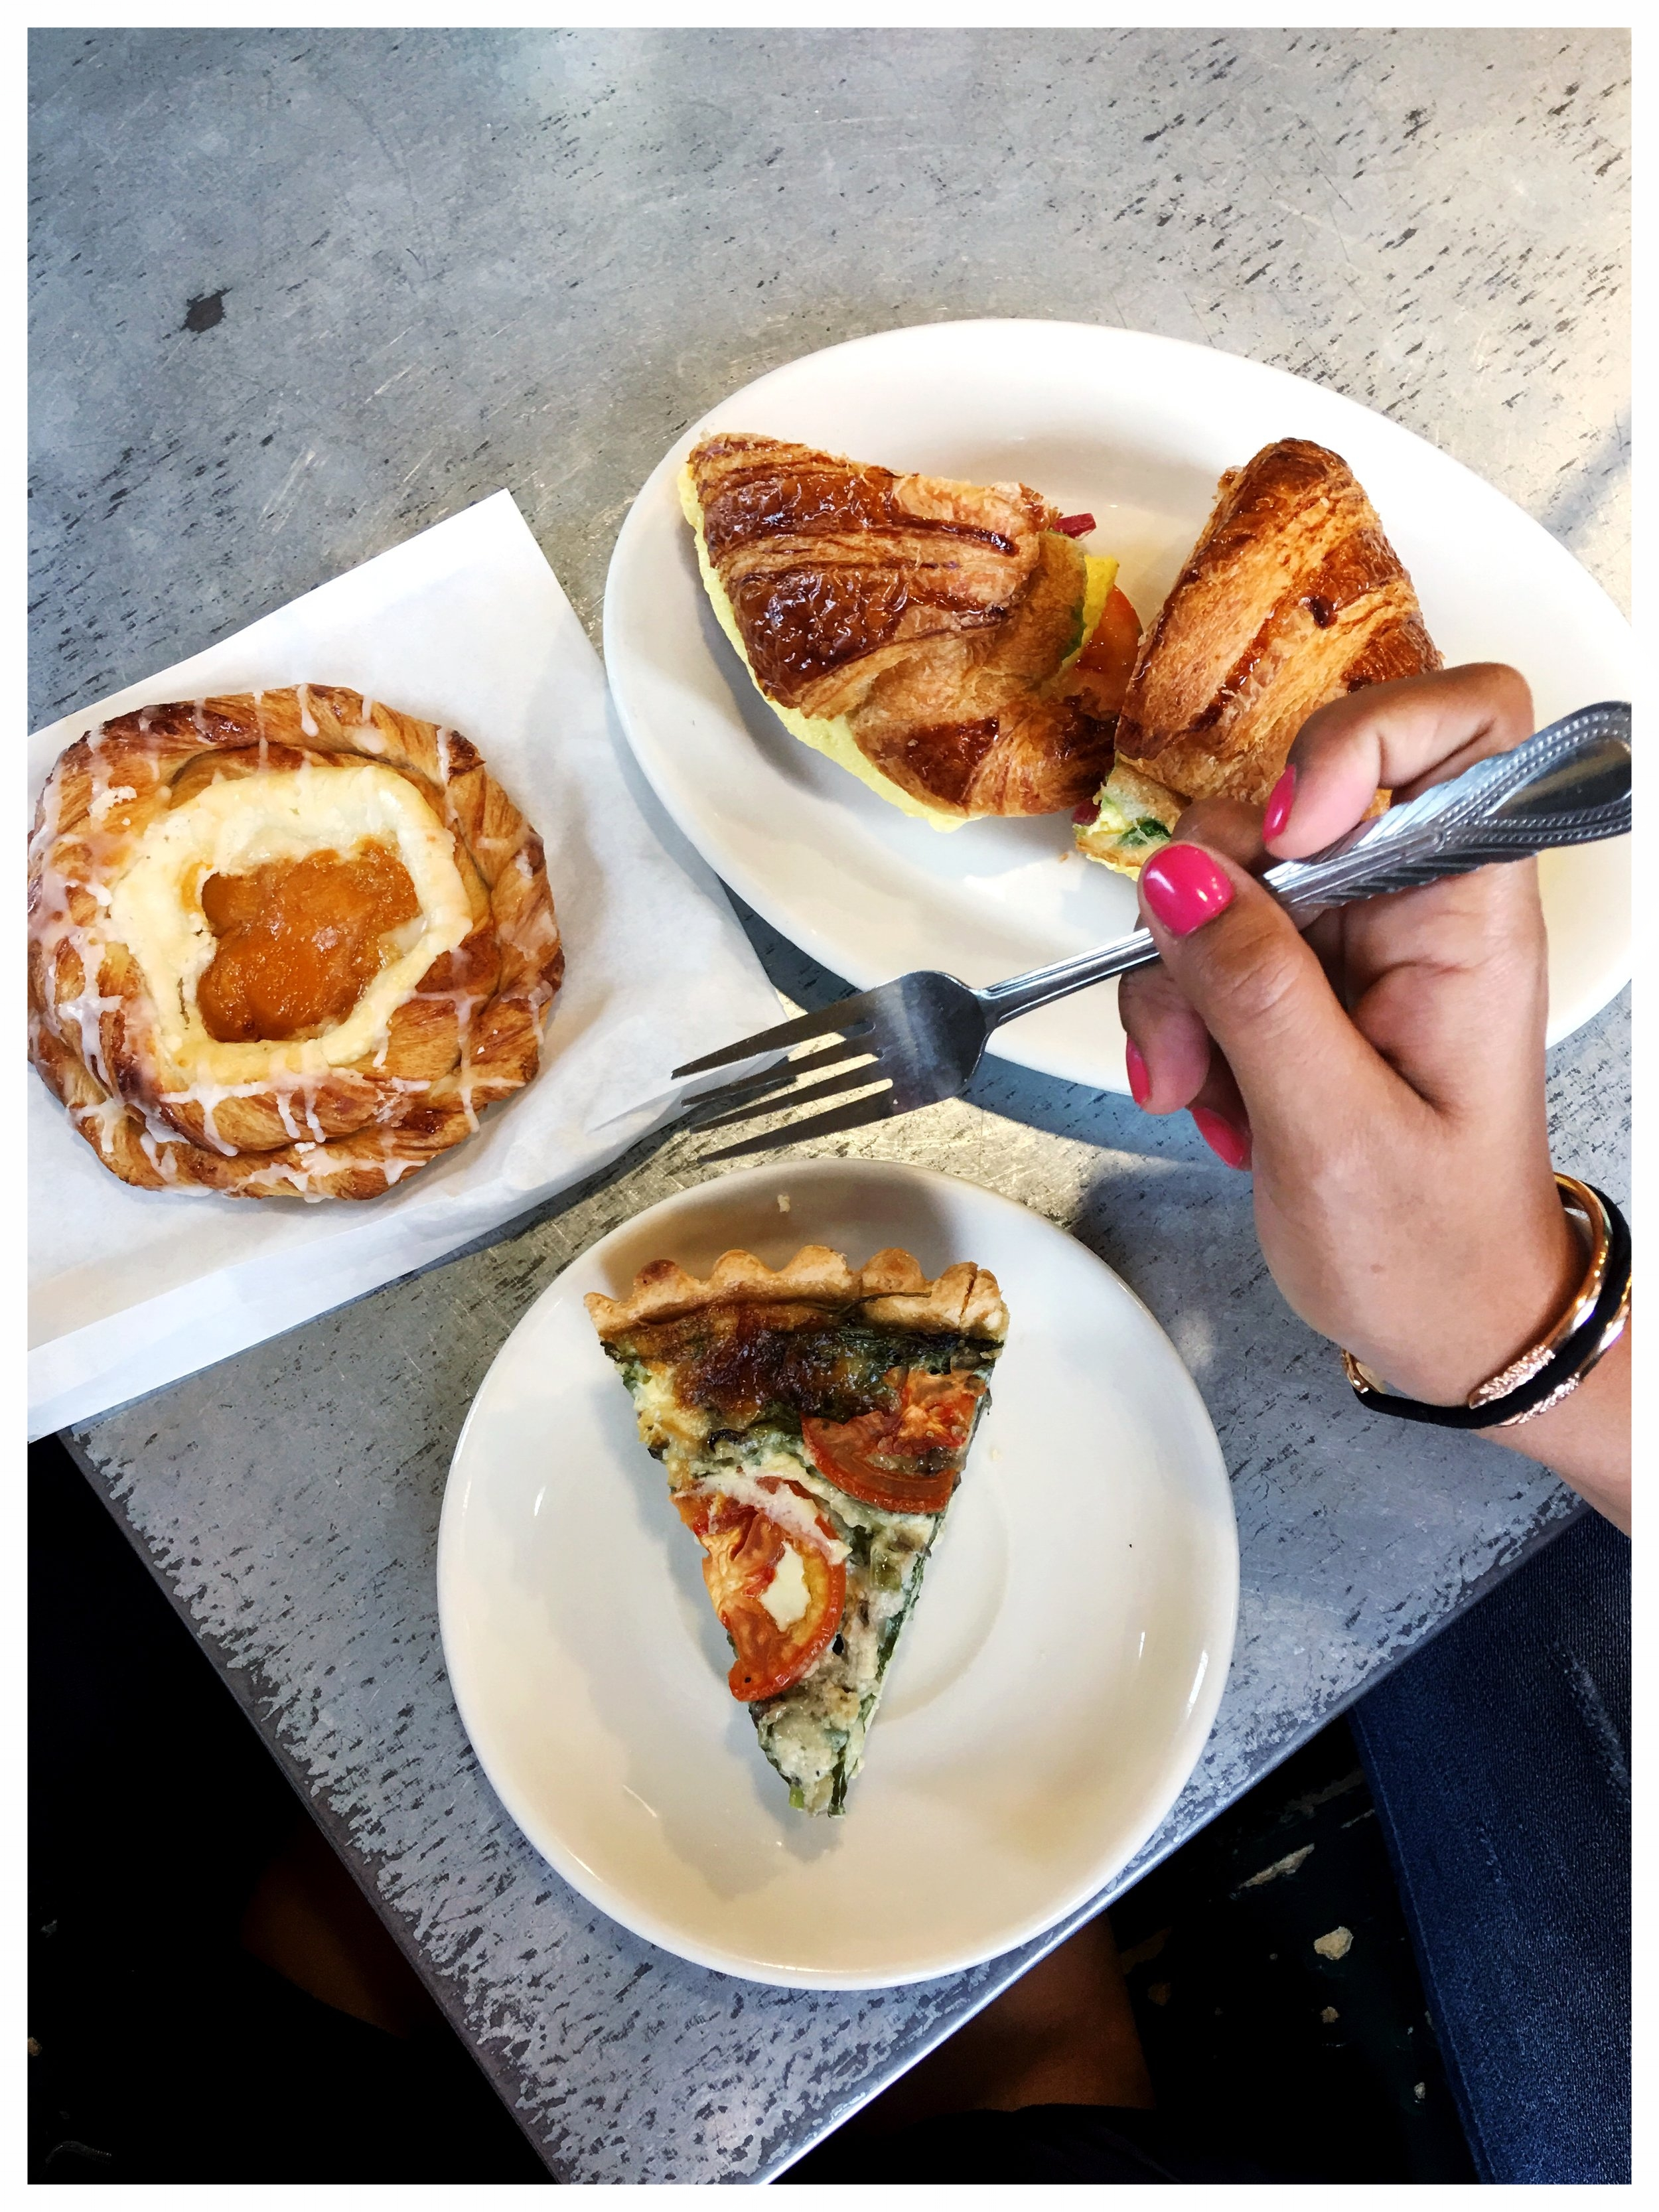 Baked Goods and Quiche from The Buttery in Santa Cruz